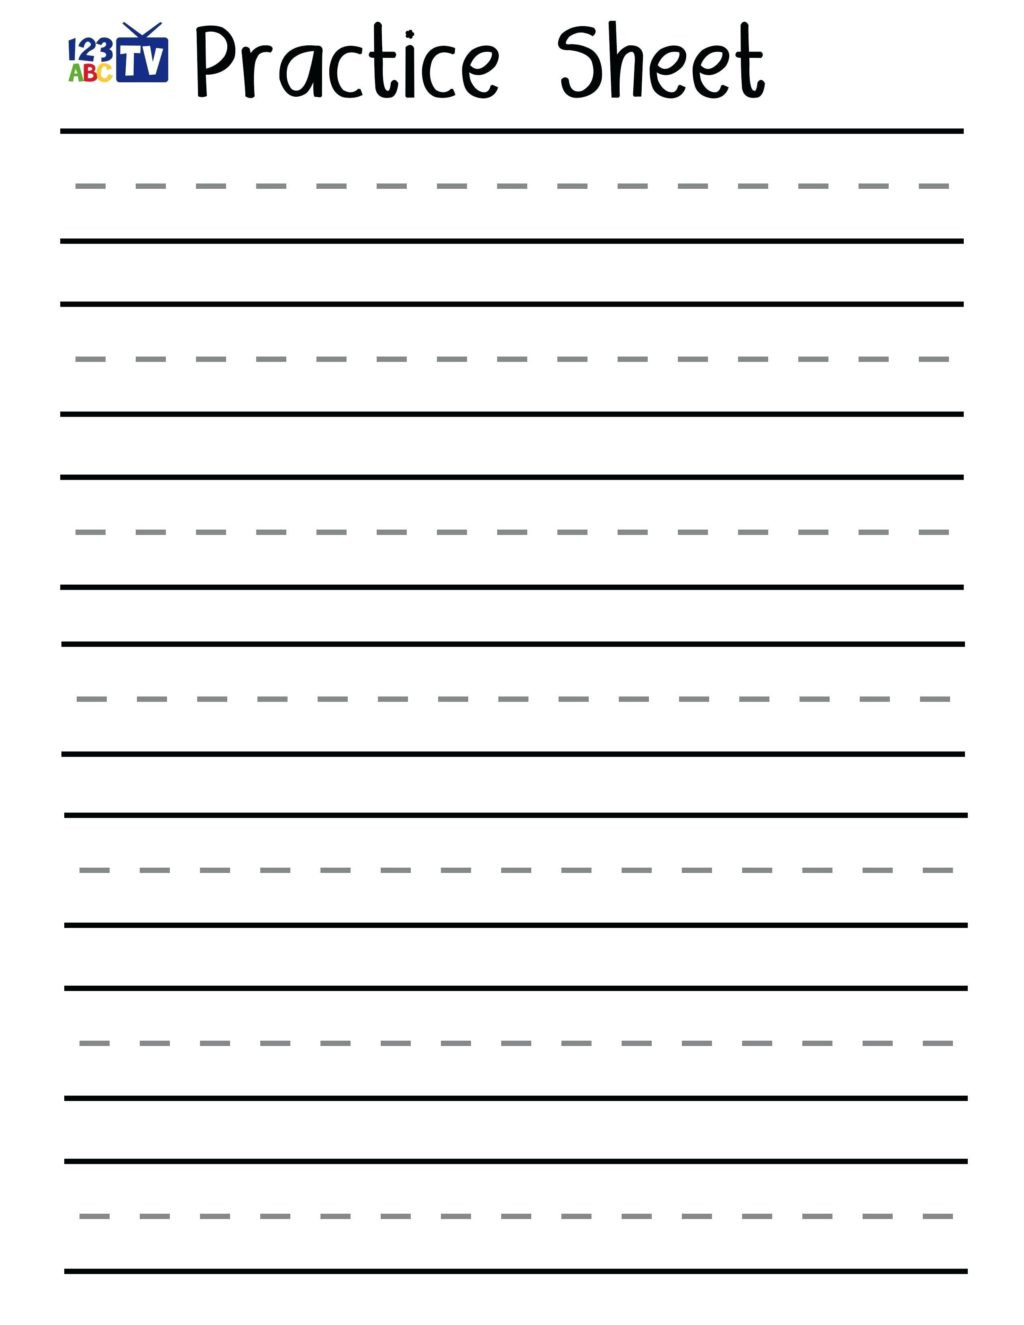 Homophone Worksheets 5th Grade Find Math 4th Grade Long Division Worksheets Blank Writing